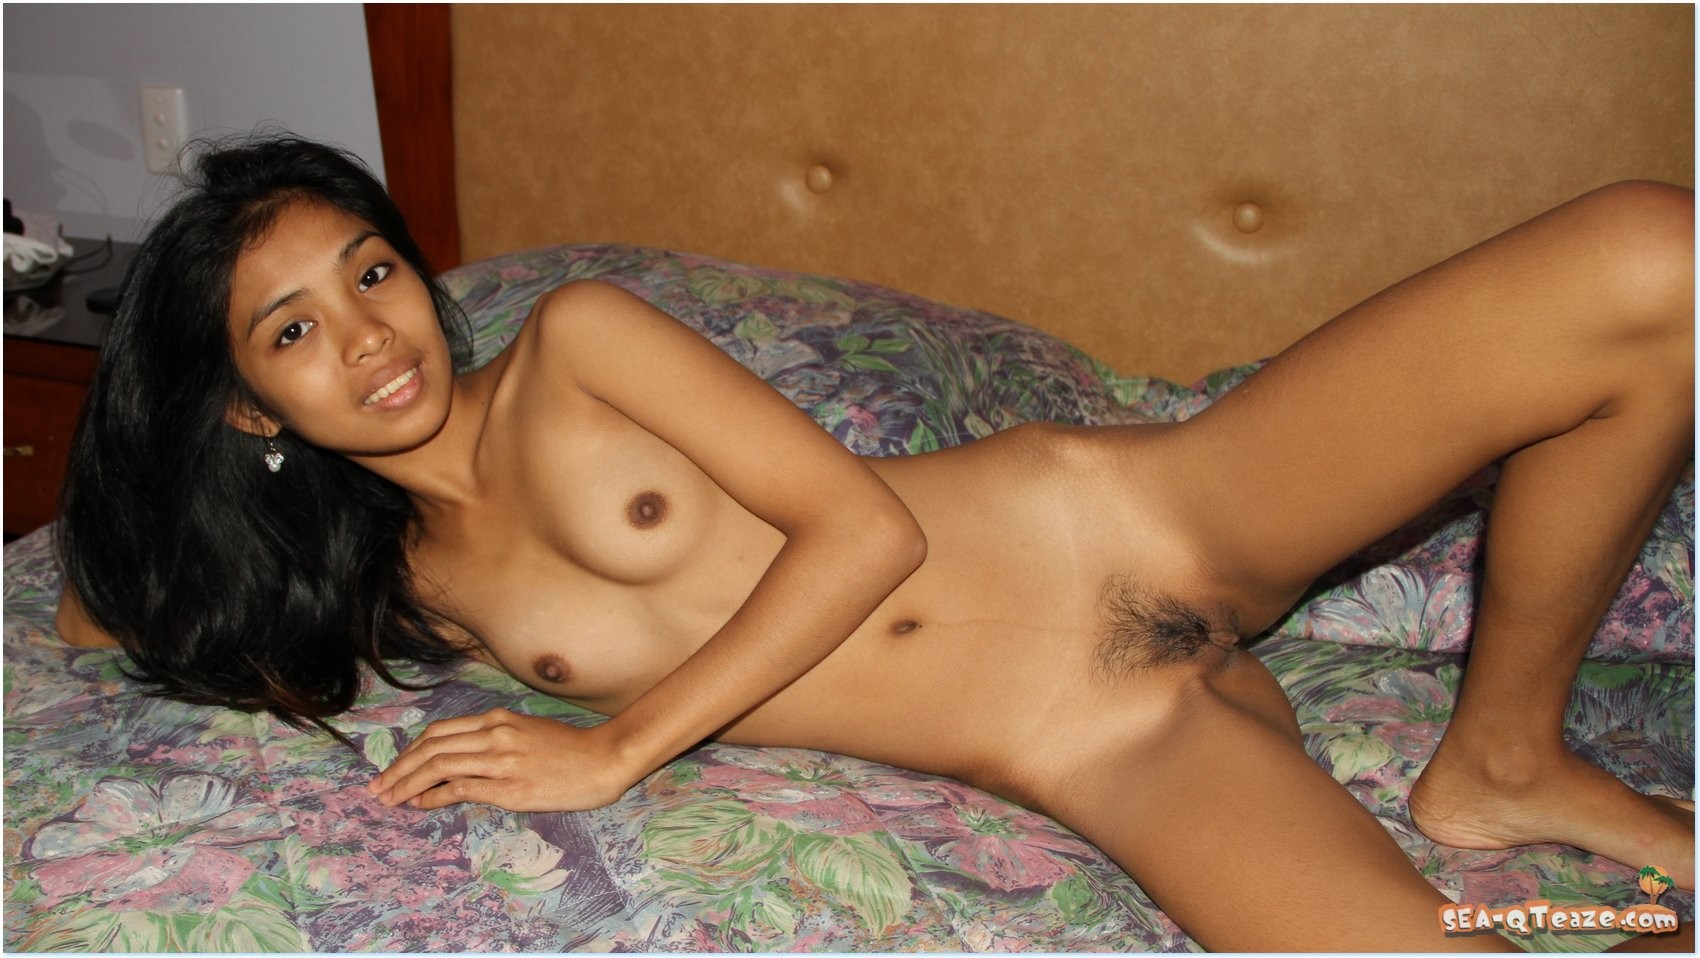 Very hot pinay nude hd — pic 6